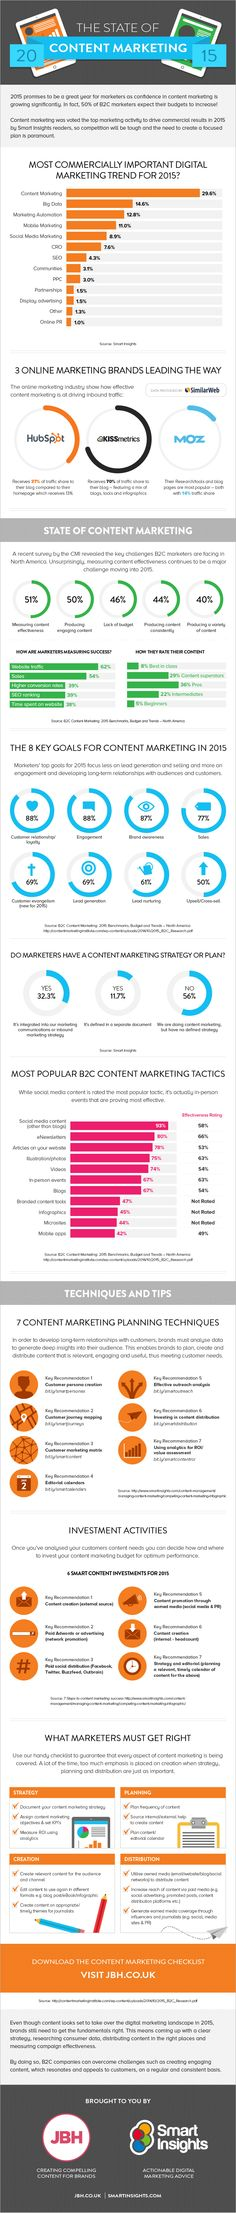 stateofcontentmarketing